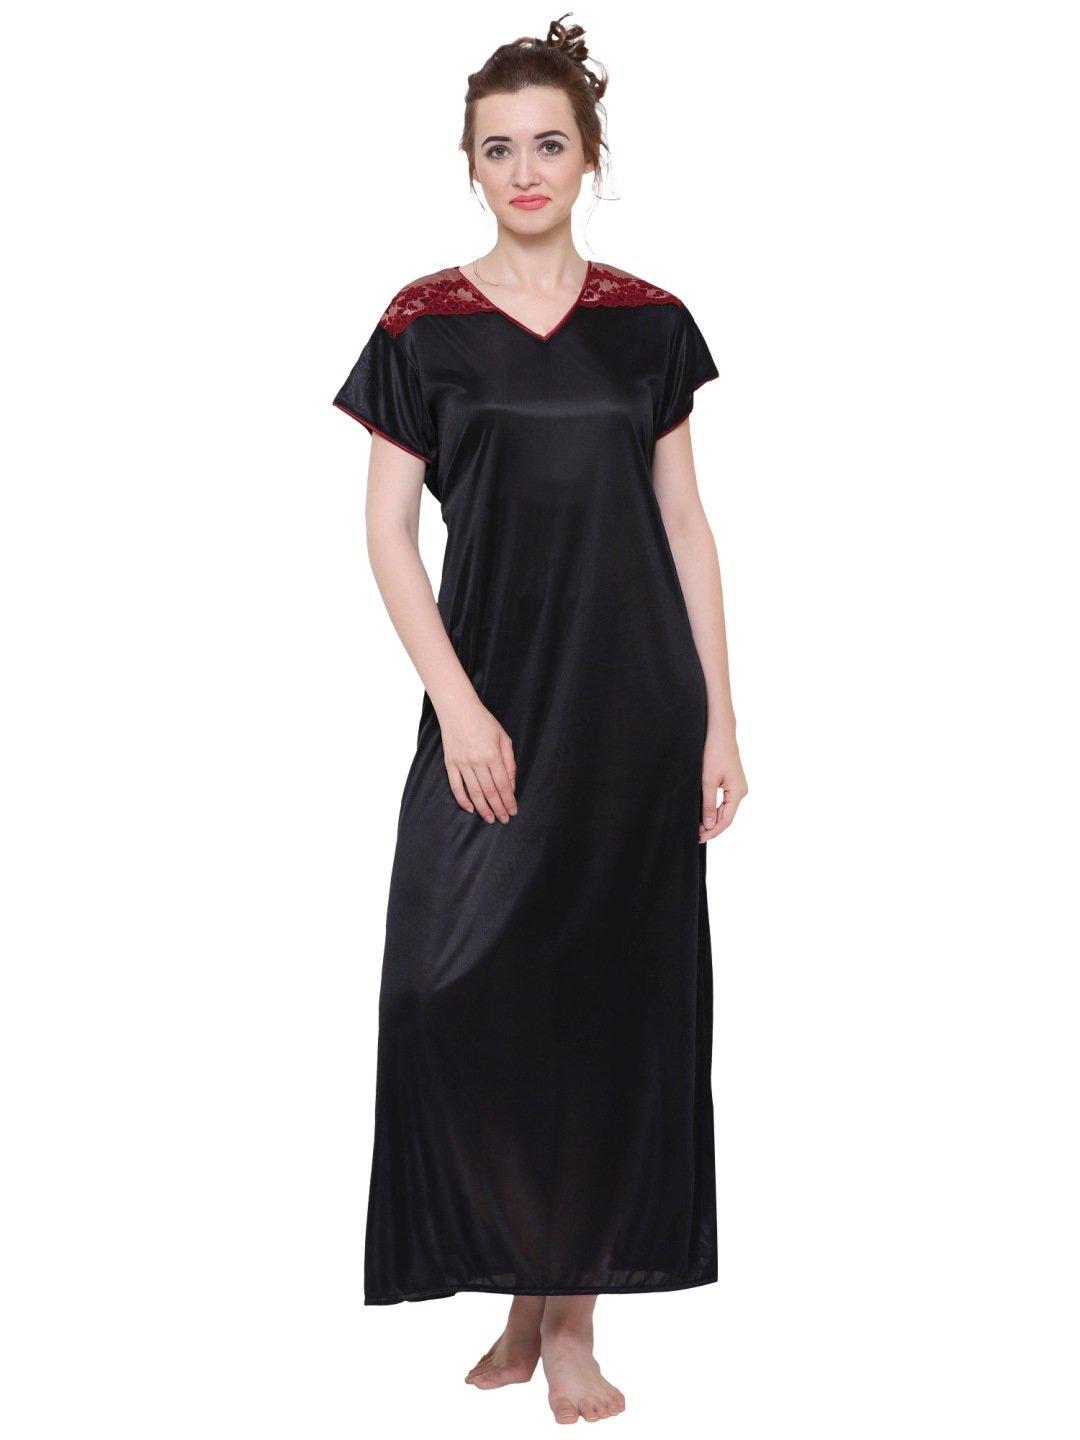 Klamotten Women's Satin Nightdress DS45K